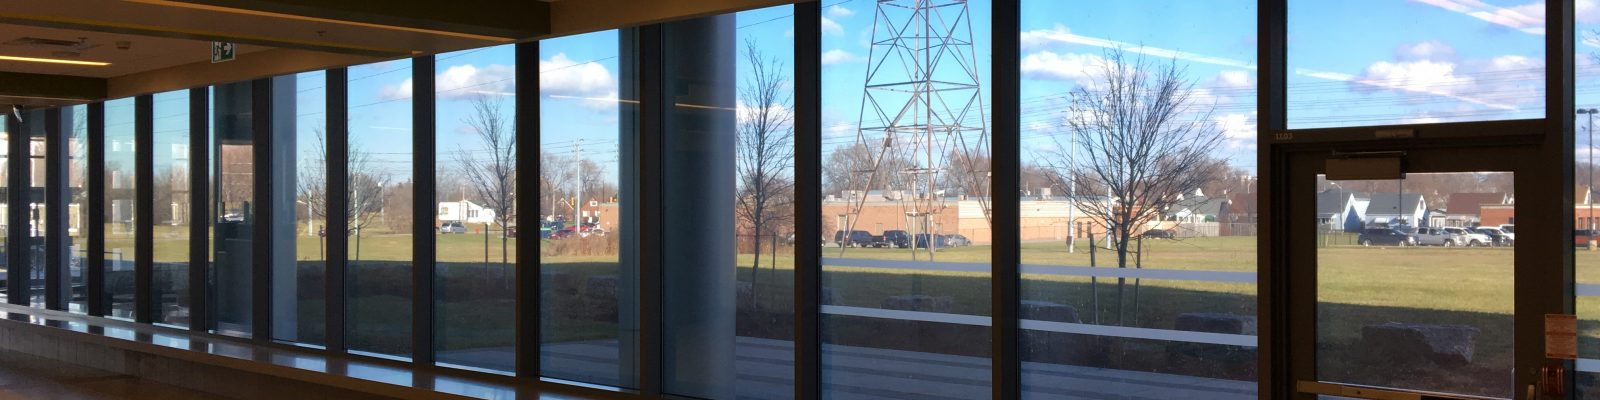 Commercial Glass Coatings & Tinting